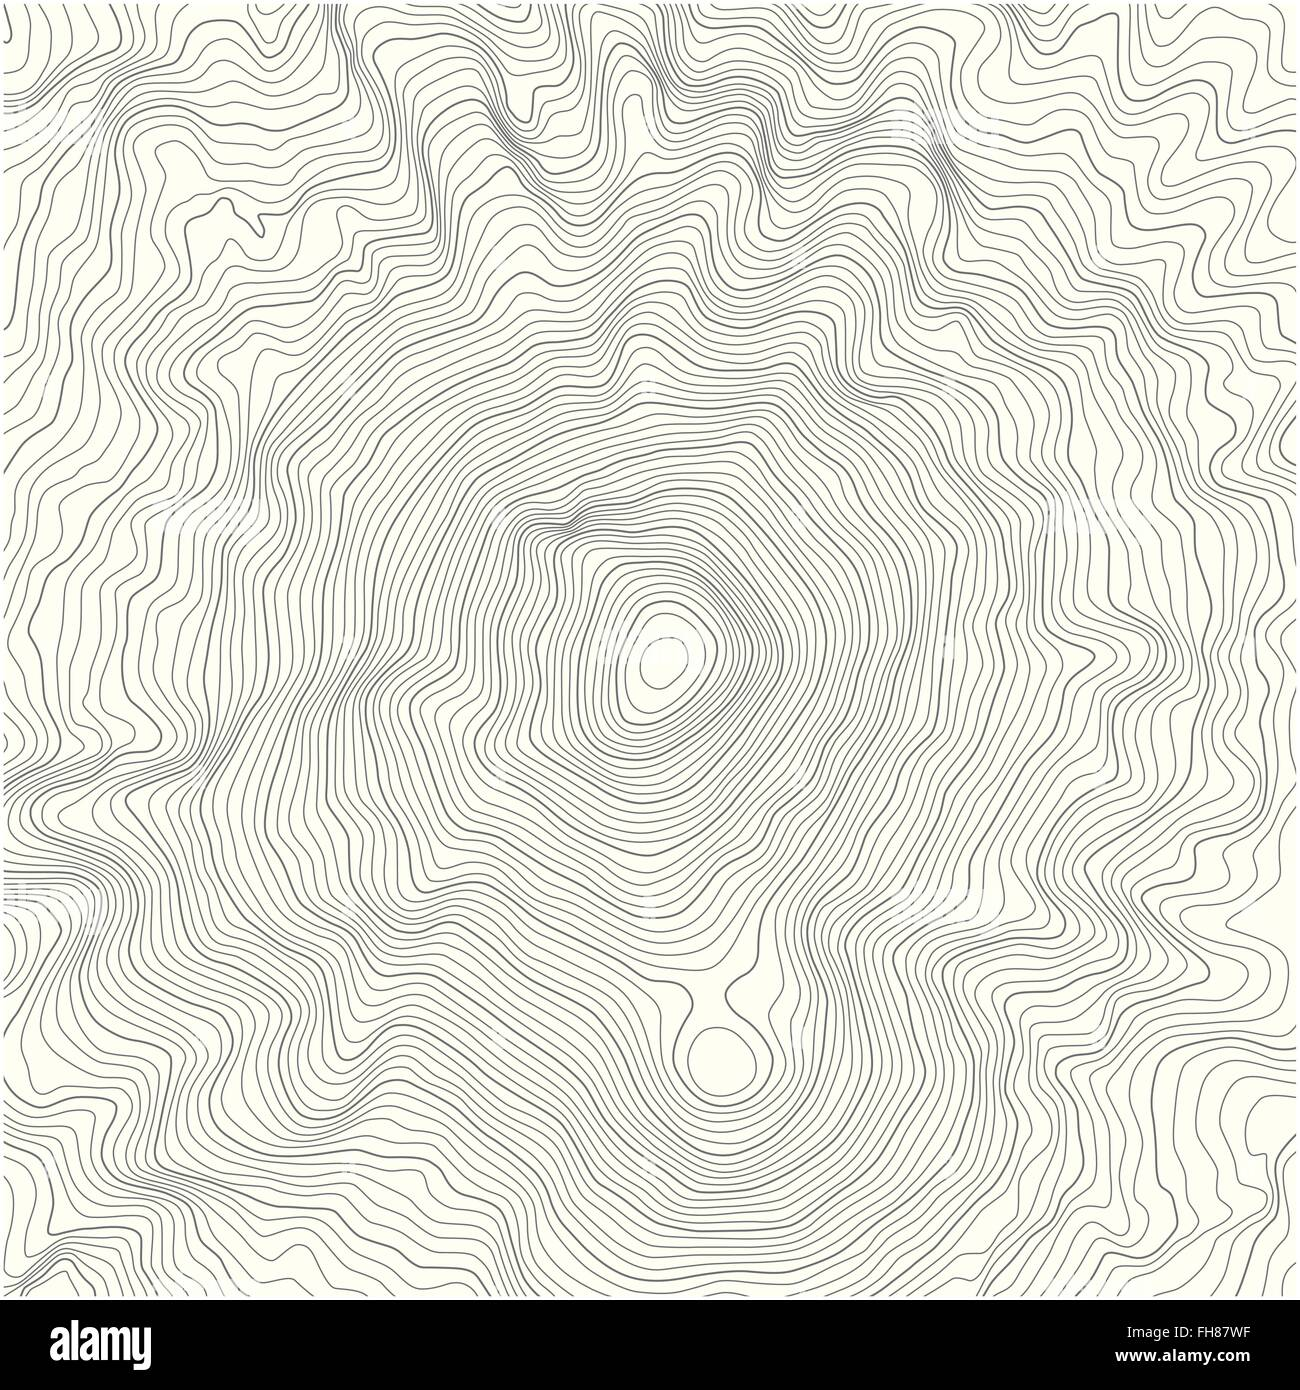 Contour Line Drawing Geography : Detailed topographic map with contour lines of a mountain